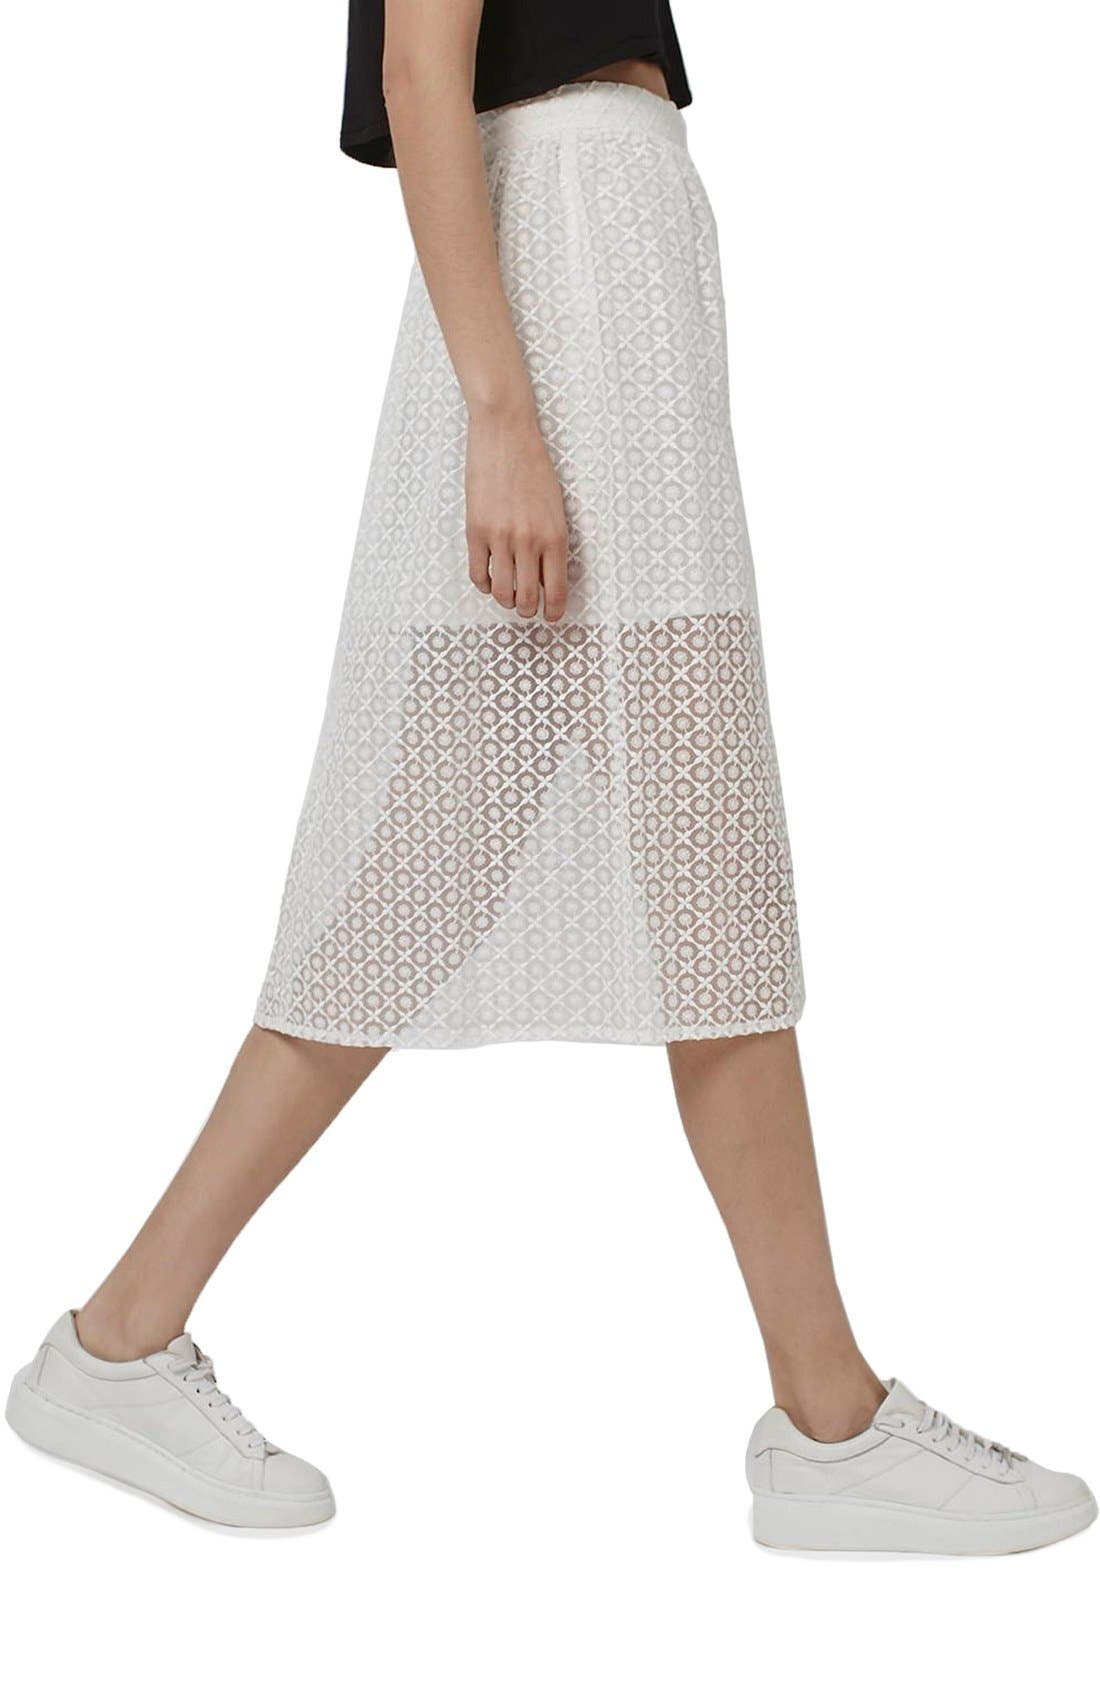 Alternate Image 1 Selected - Topshop Floral Embroidered Organza Midi Skirt